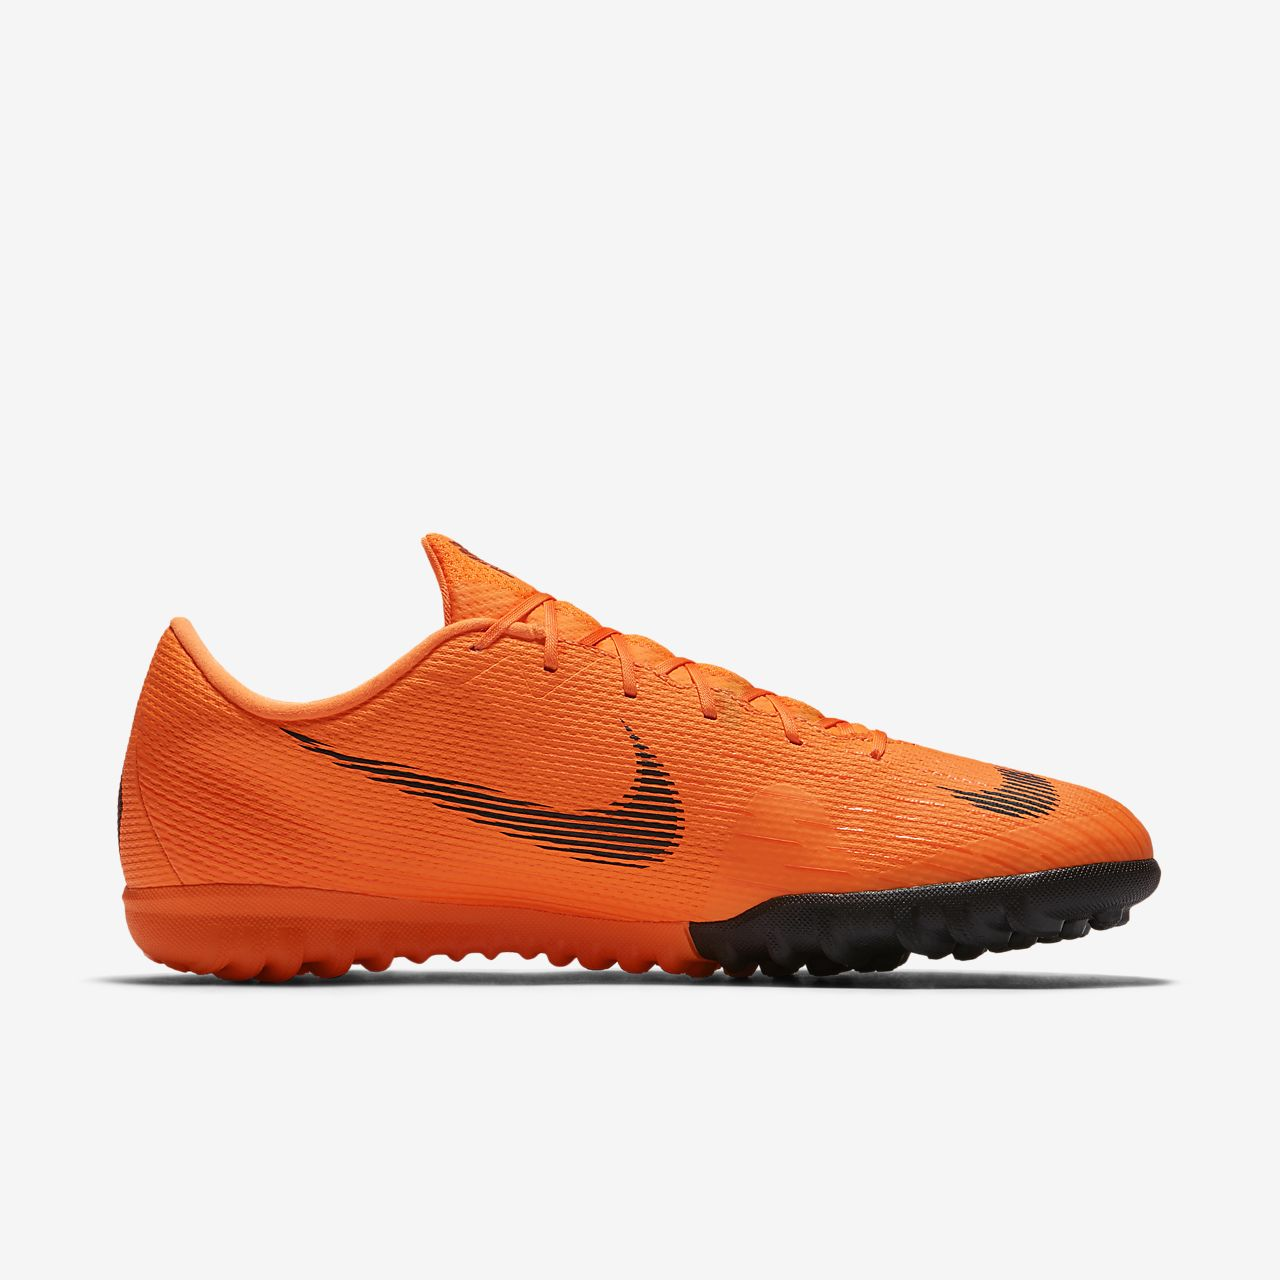 The Nike Sportswear Mercurial and Magista Collections Nike